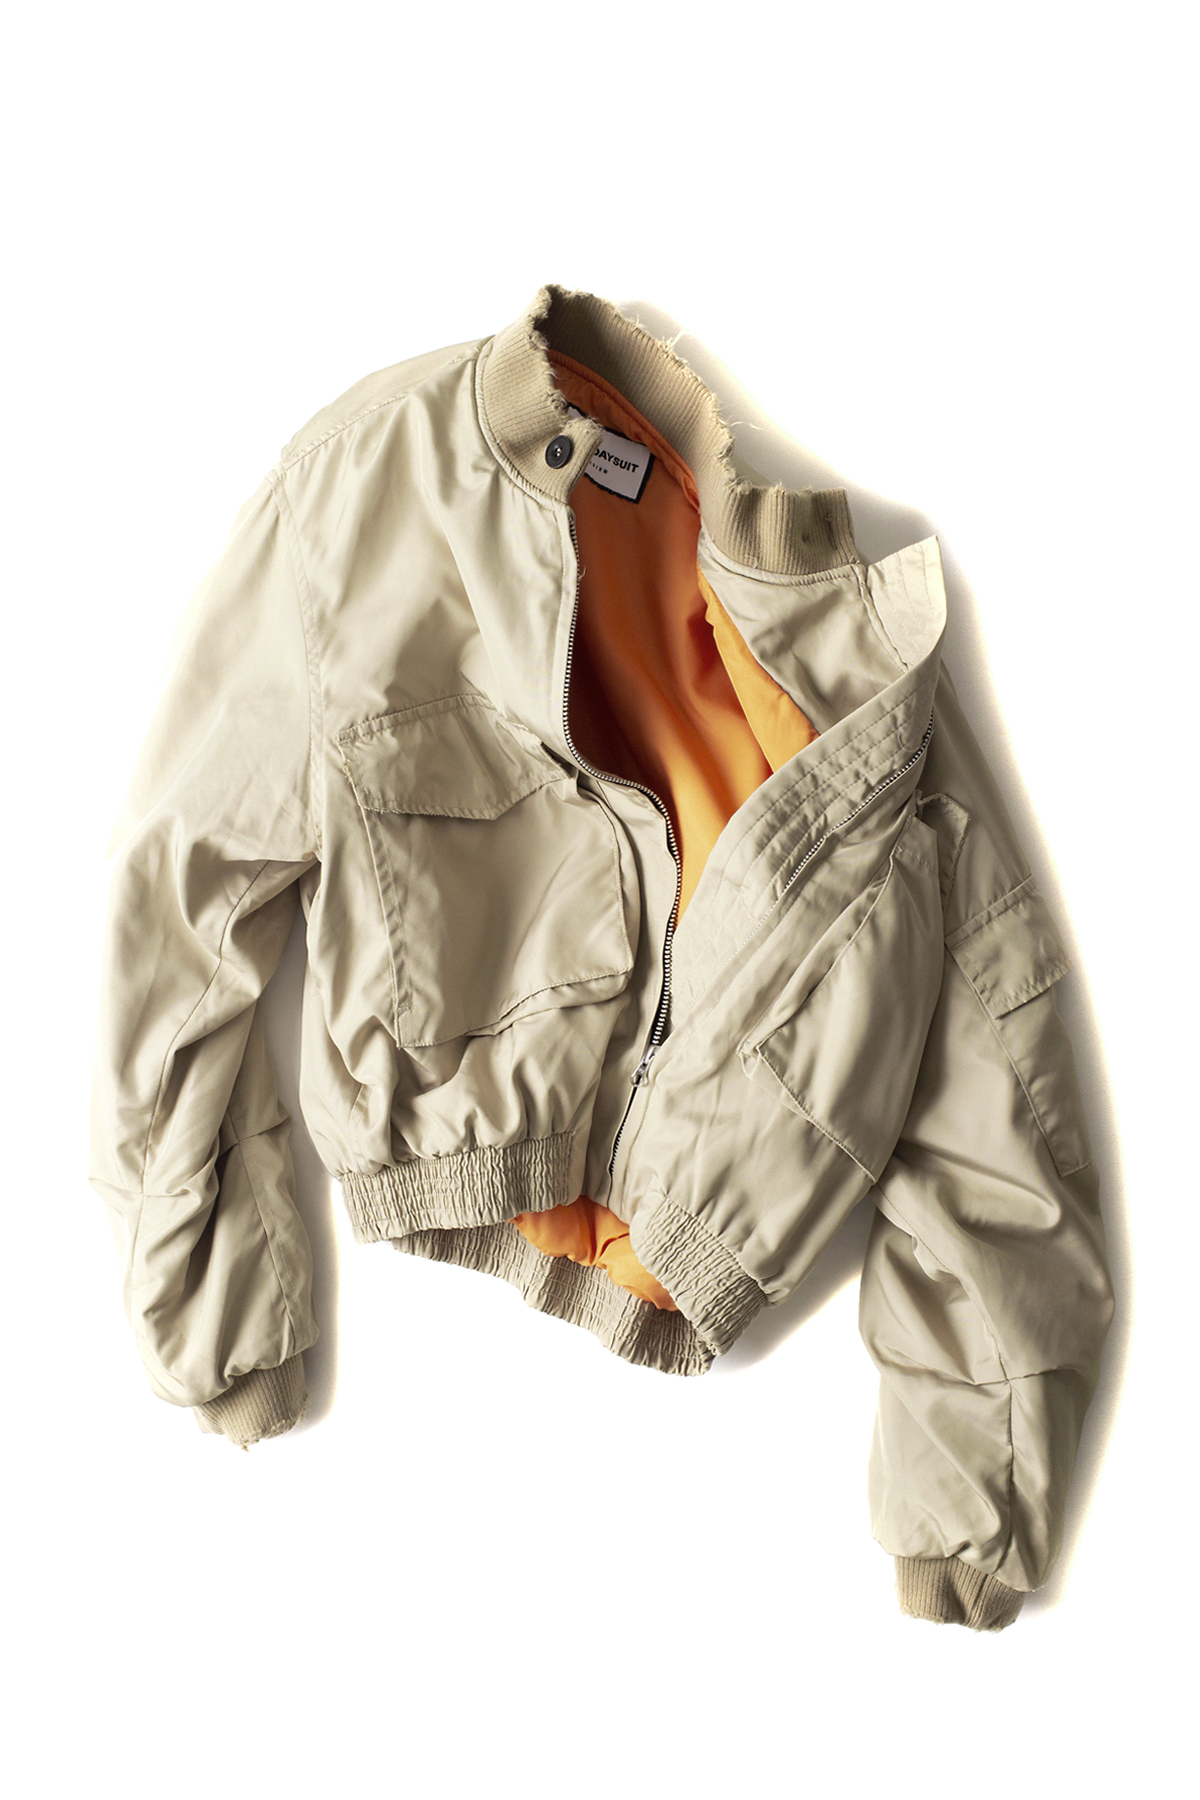 BIRTHDAYSUIT : G-8 Flight Jacket (Beige)